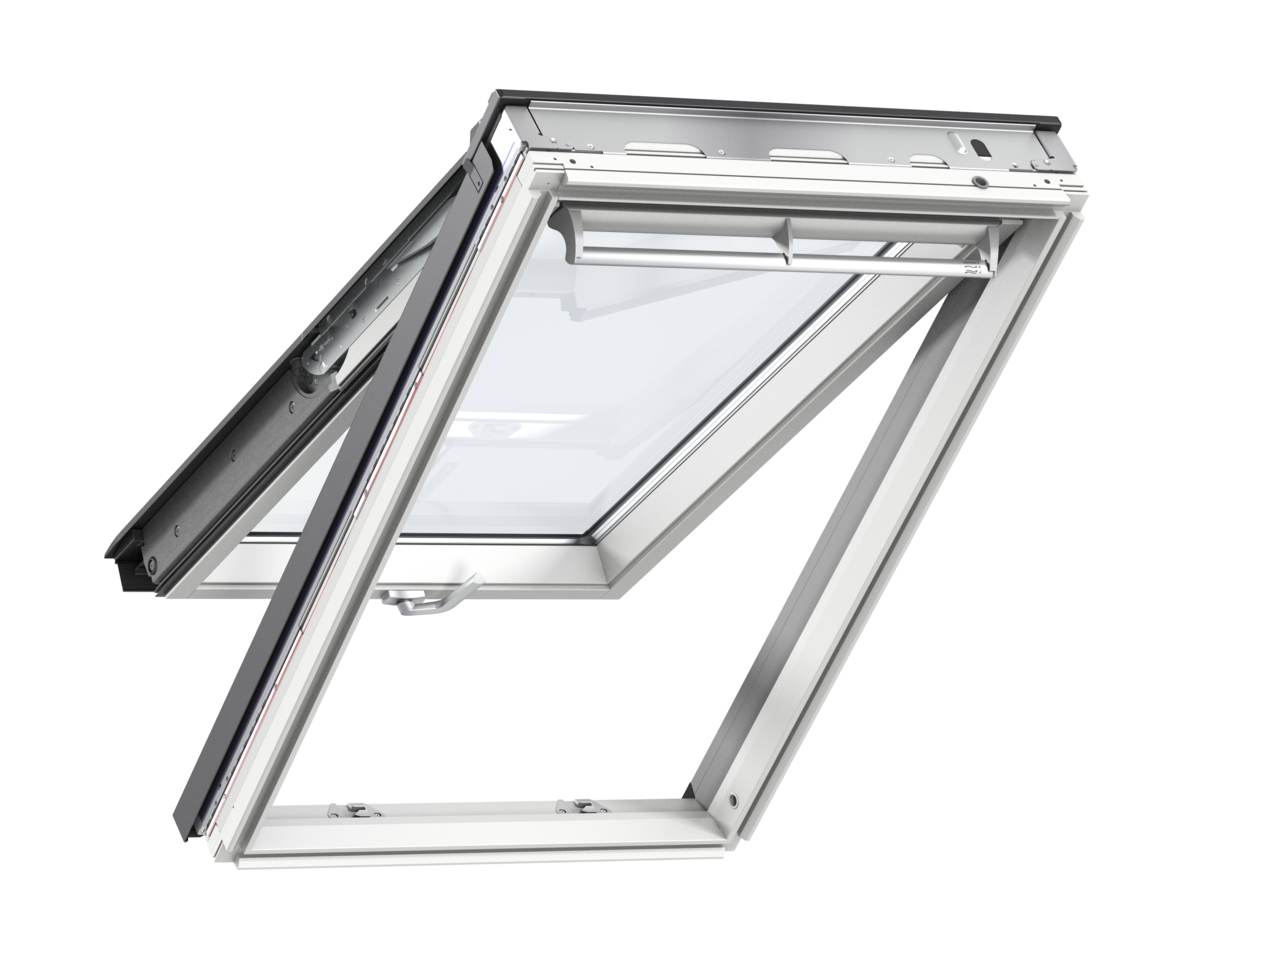 Velux GPL CK04 550 x 980mm Top Hung 66Pane Roof Window - White Painted